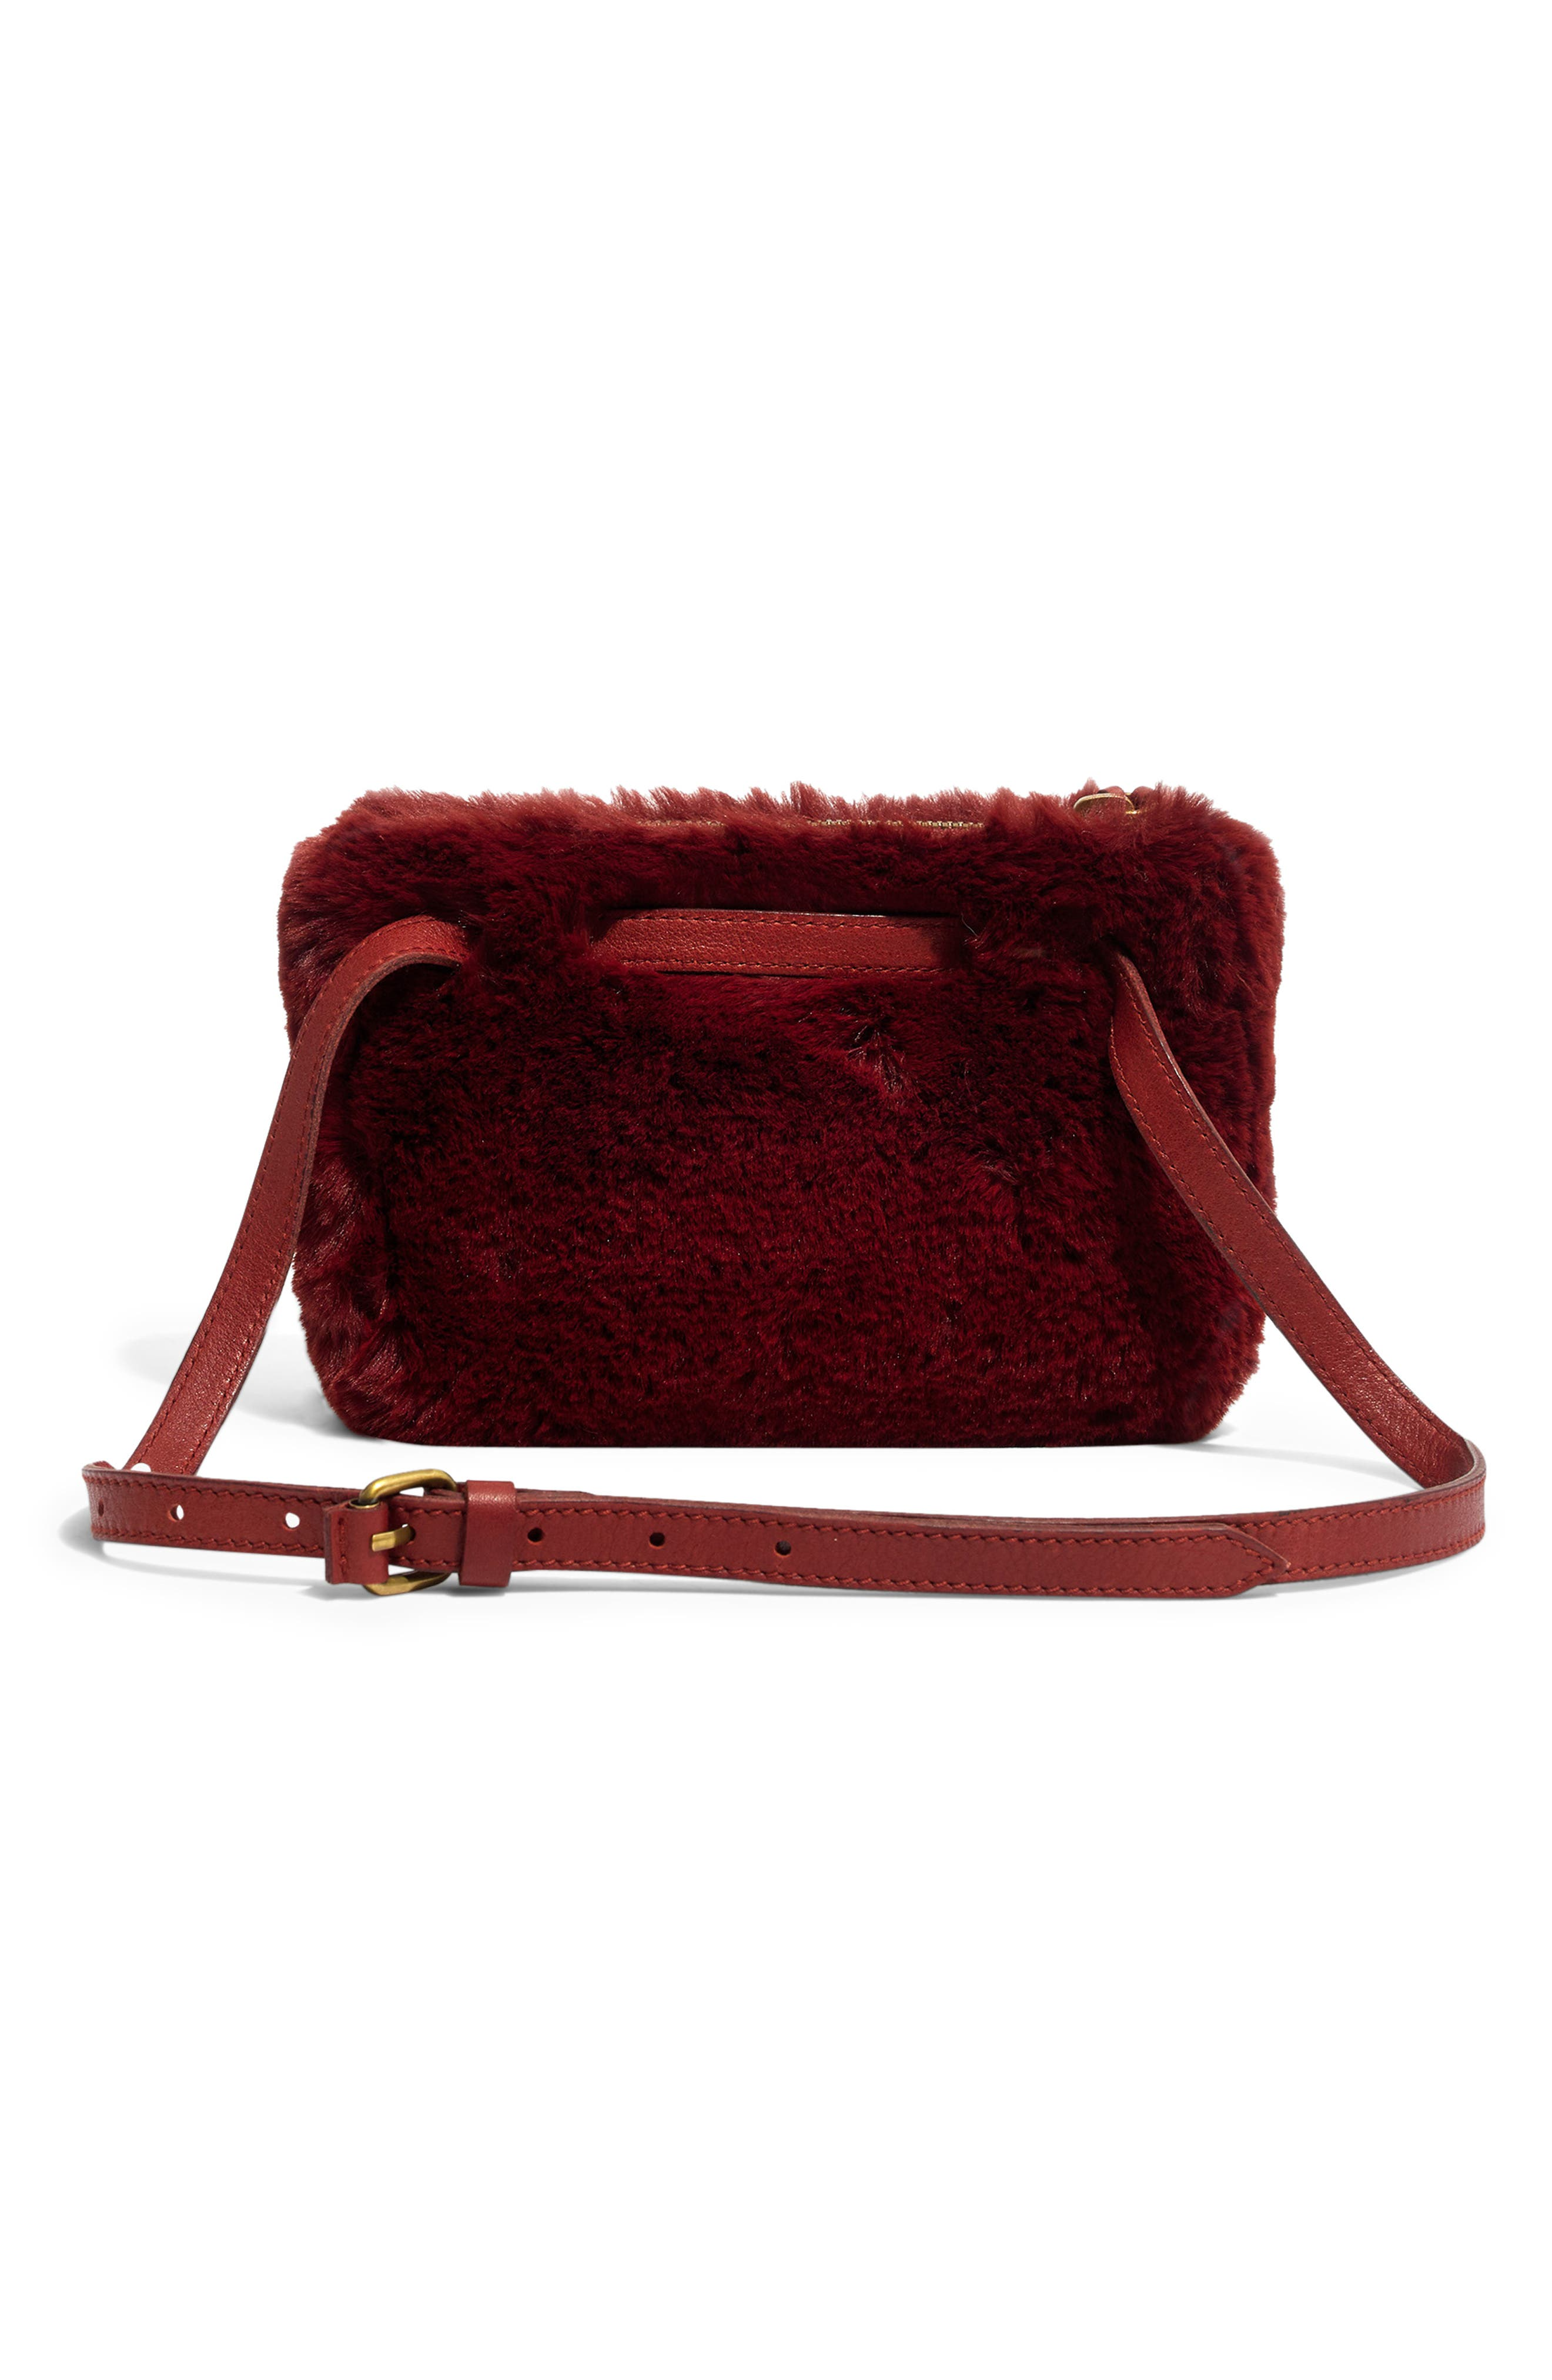 MADEWELL,                             The Simple Pouch Faux Fur Belt Bag,                             Alternate thumbnail 2, color,                             600